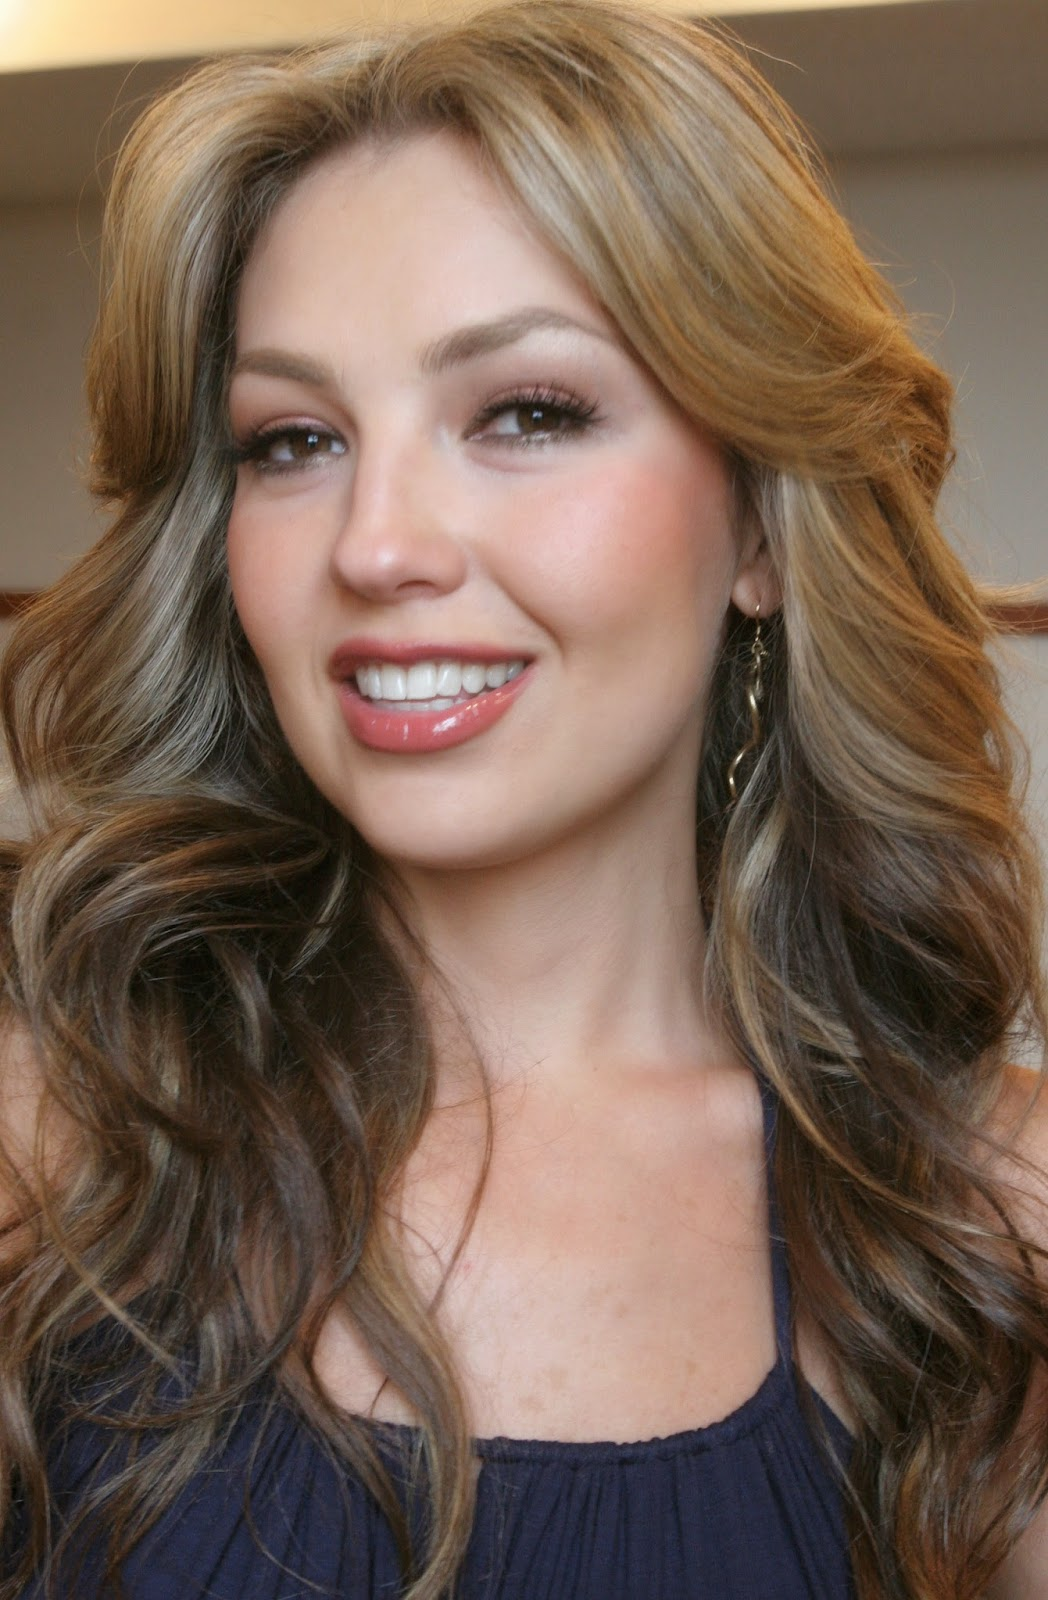 Mexican Pop Singer Thalia 'Removed her Ribs to look Smart' and pickling in a jar